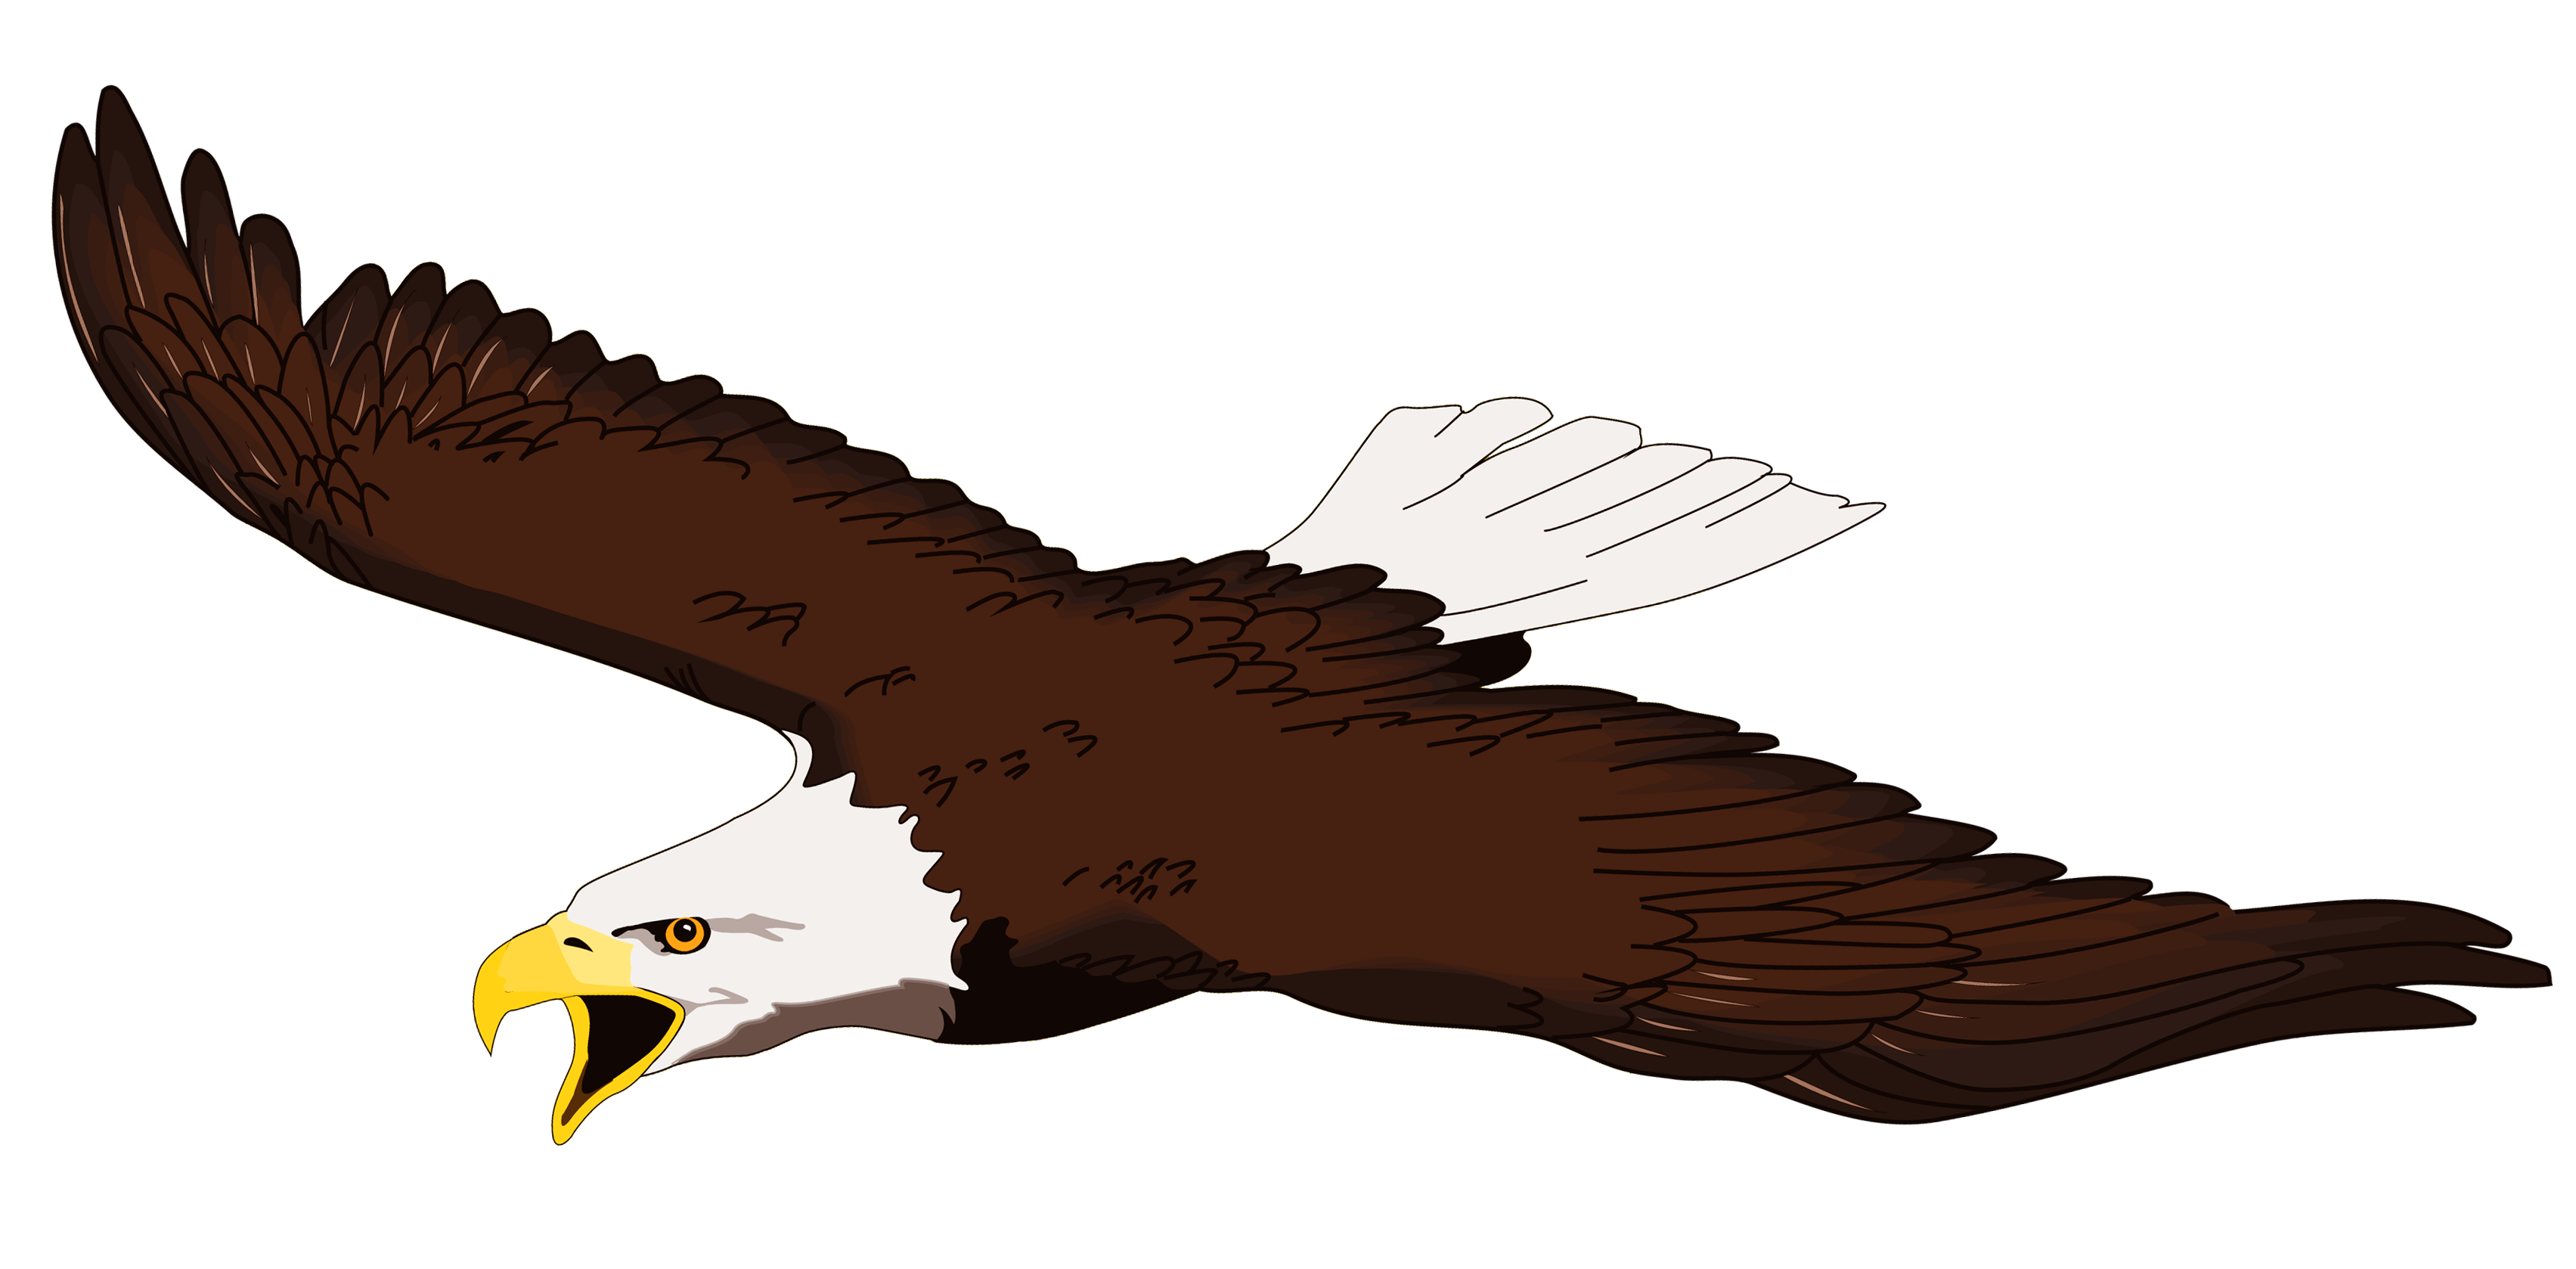 Eagle transparent png gallery. Kite clipart clear background